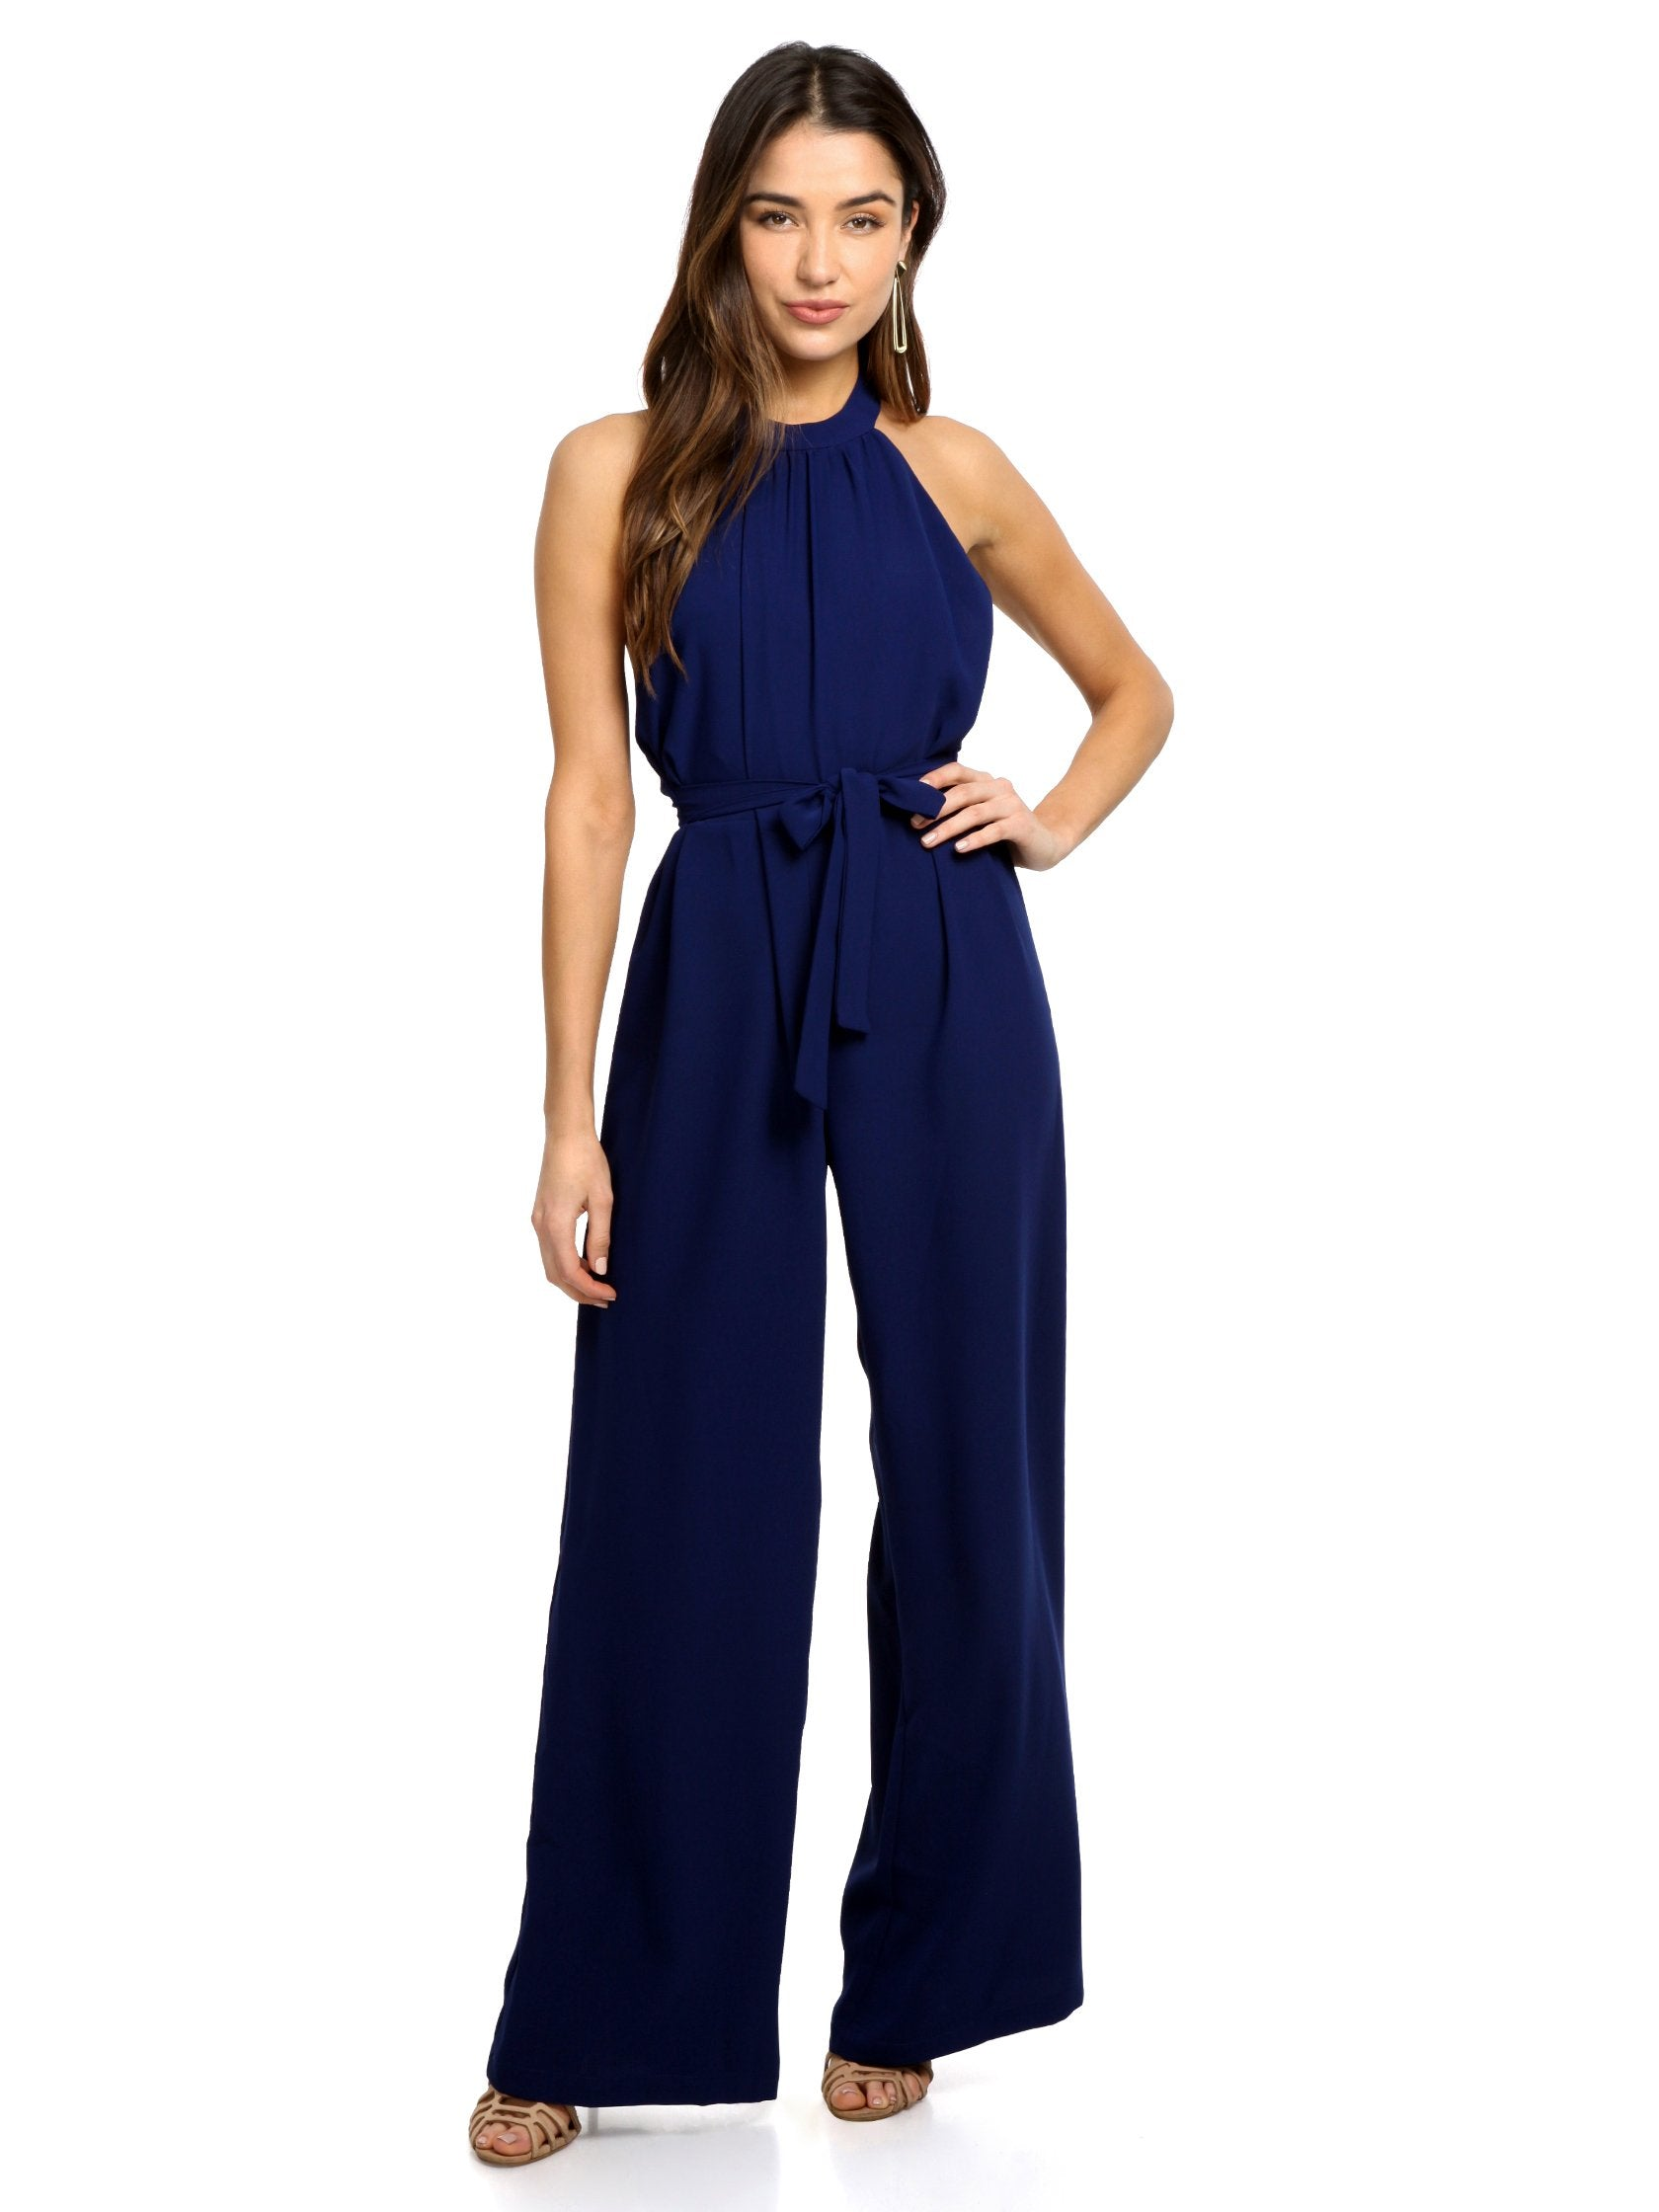 Girl outfit in a jumpsuit rental from Amanda Uprichard called Lawrence Jumpsuit